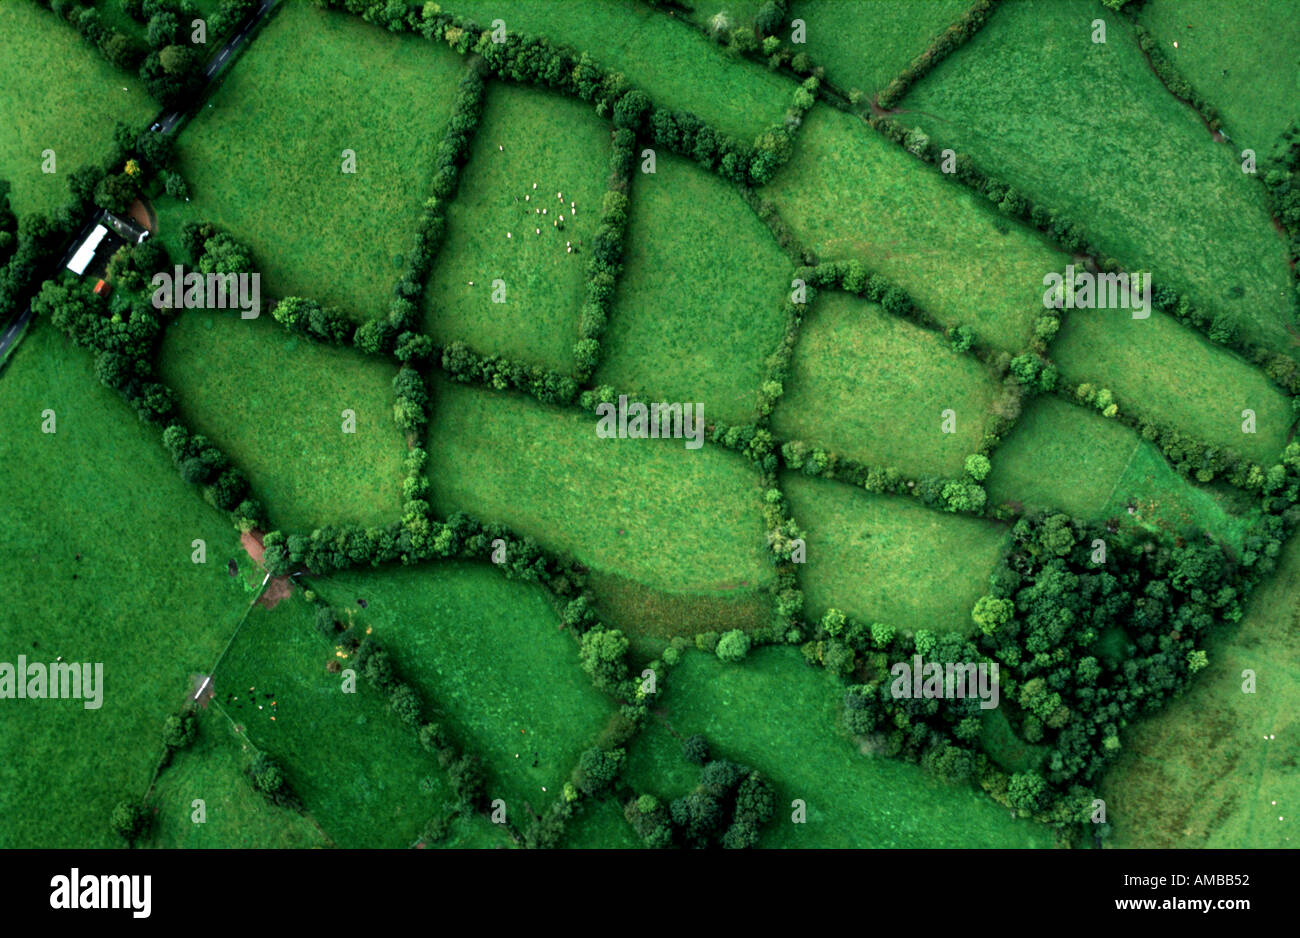 Des champs verts de l'Irlande Photo Stock